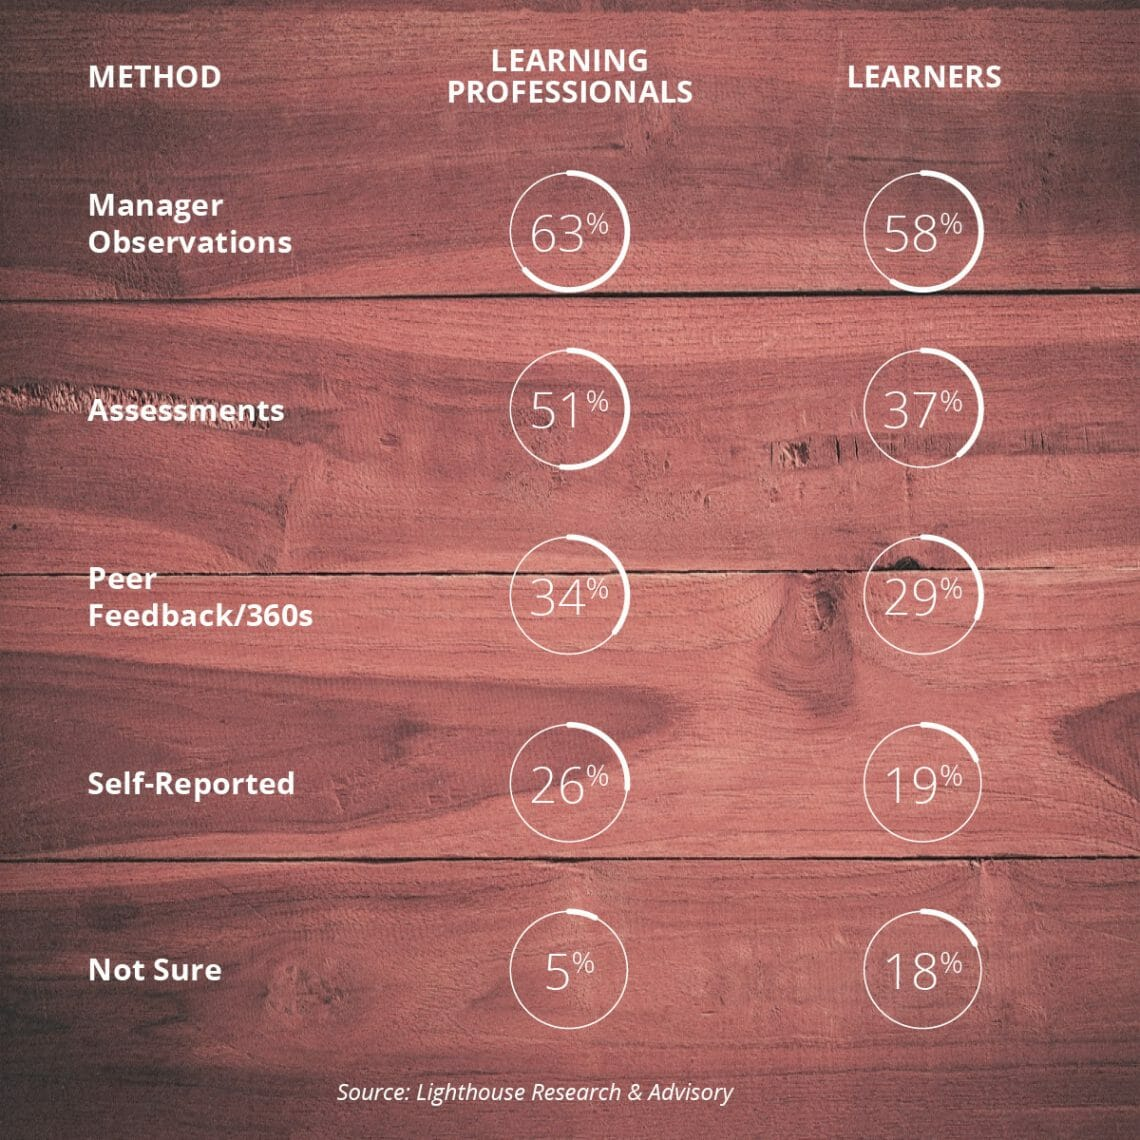 Most common ways the business identifies worker skills